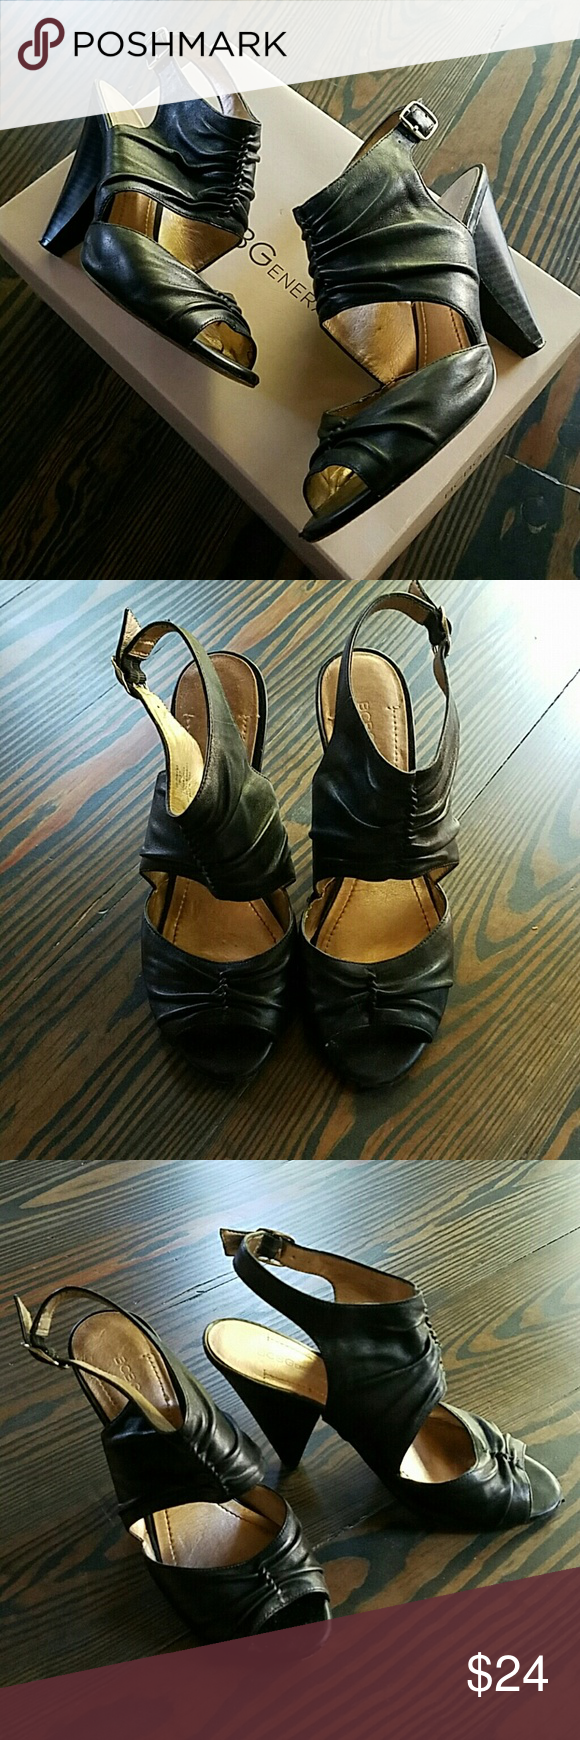 BCBGENERATION heels Soft leather... these are unexpected and fun! BCBGeneration Shoes Heels